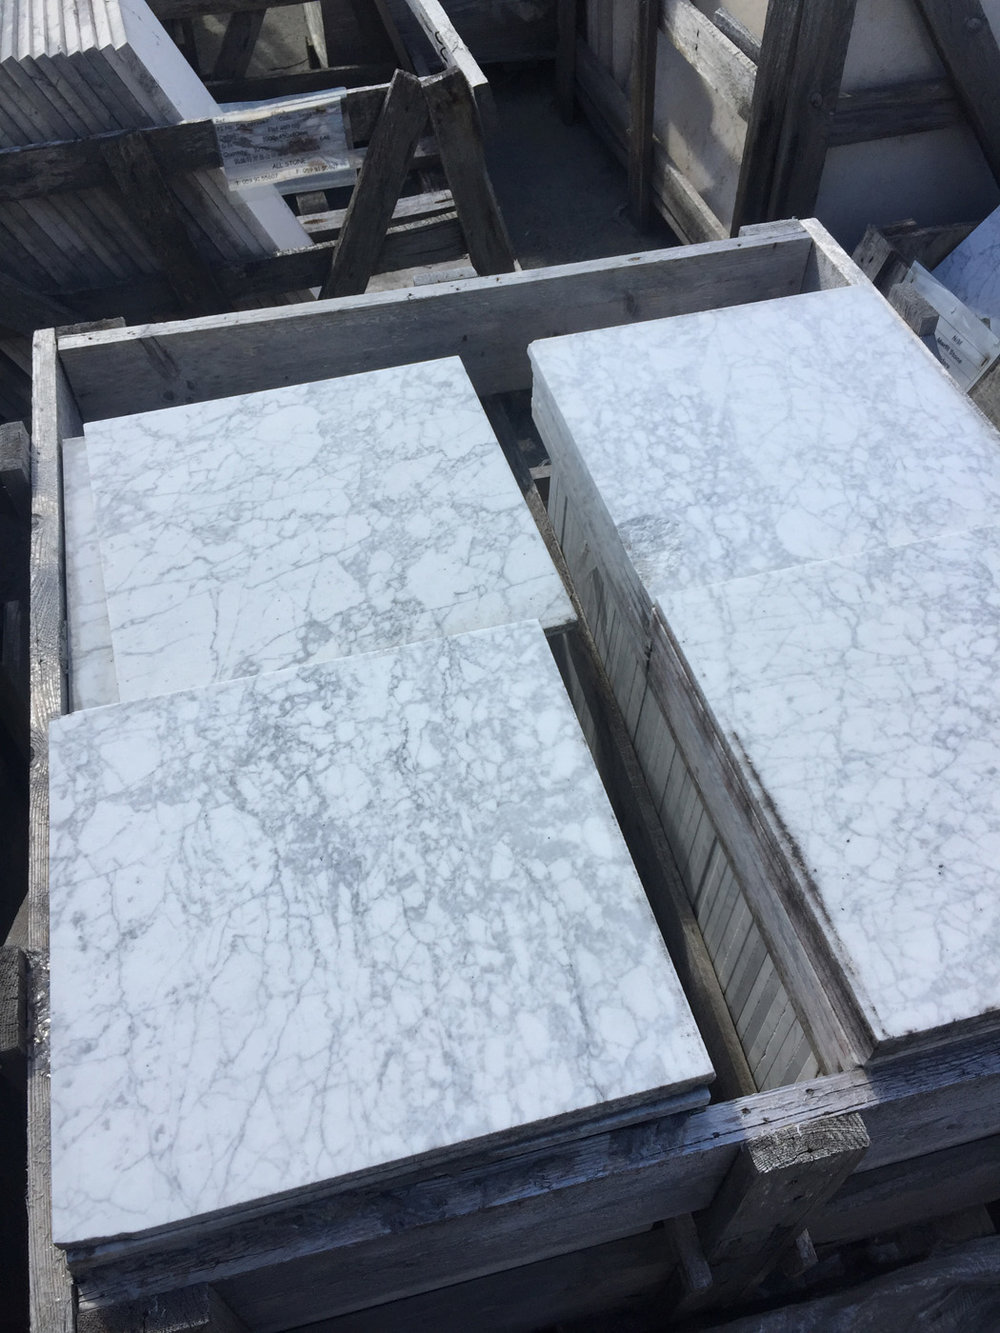 400x400x12mm honed carrara tiles @ €50/sqm